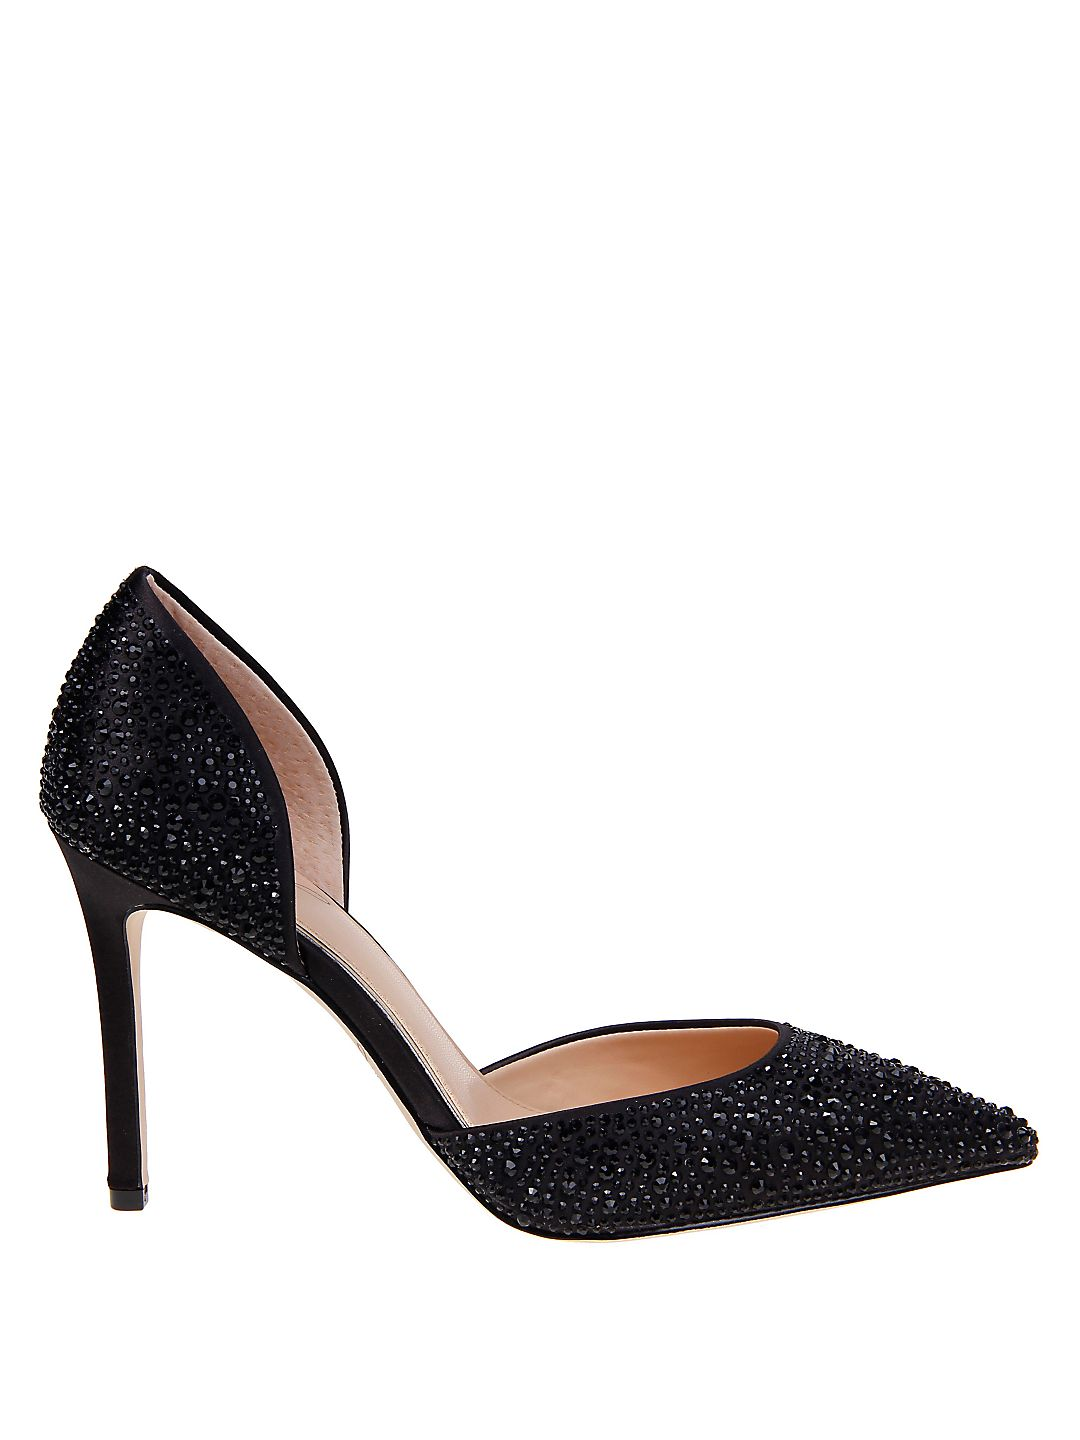 Alexandra Embellished D'Orsay Pumps Affordable and personalized shoes